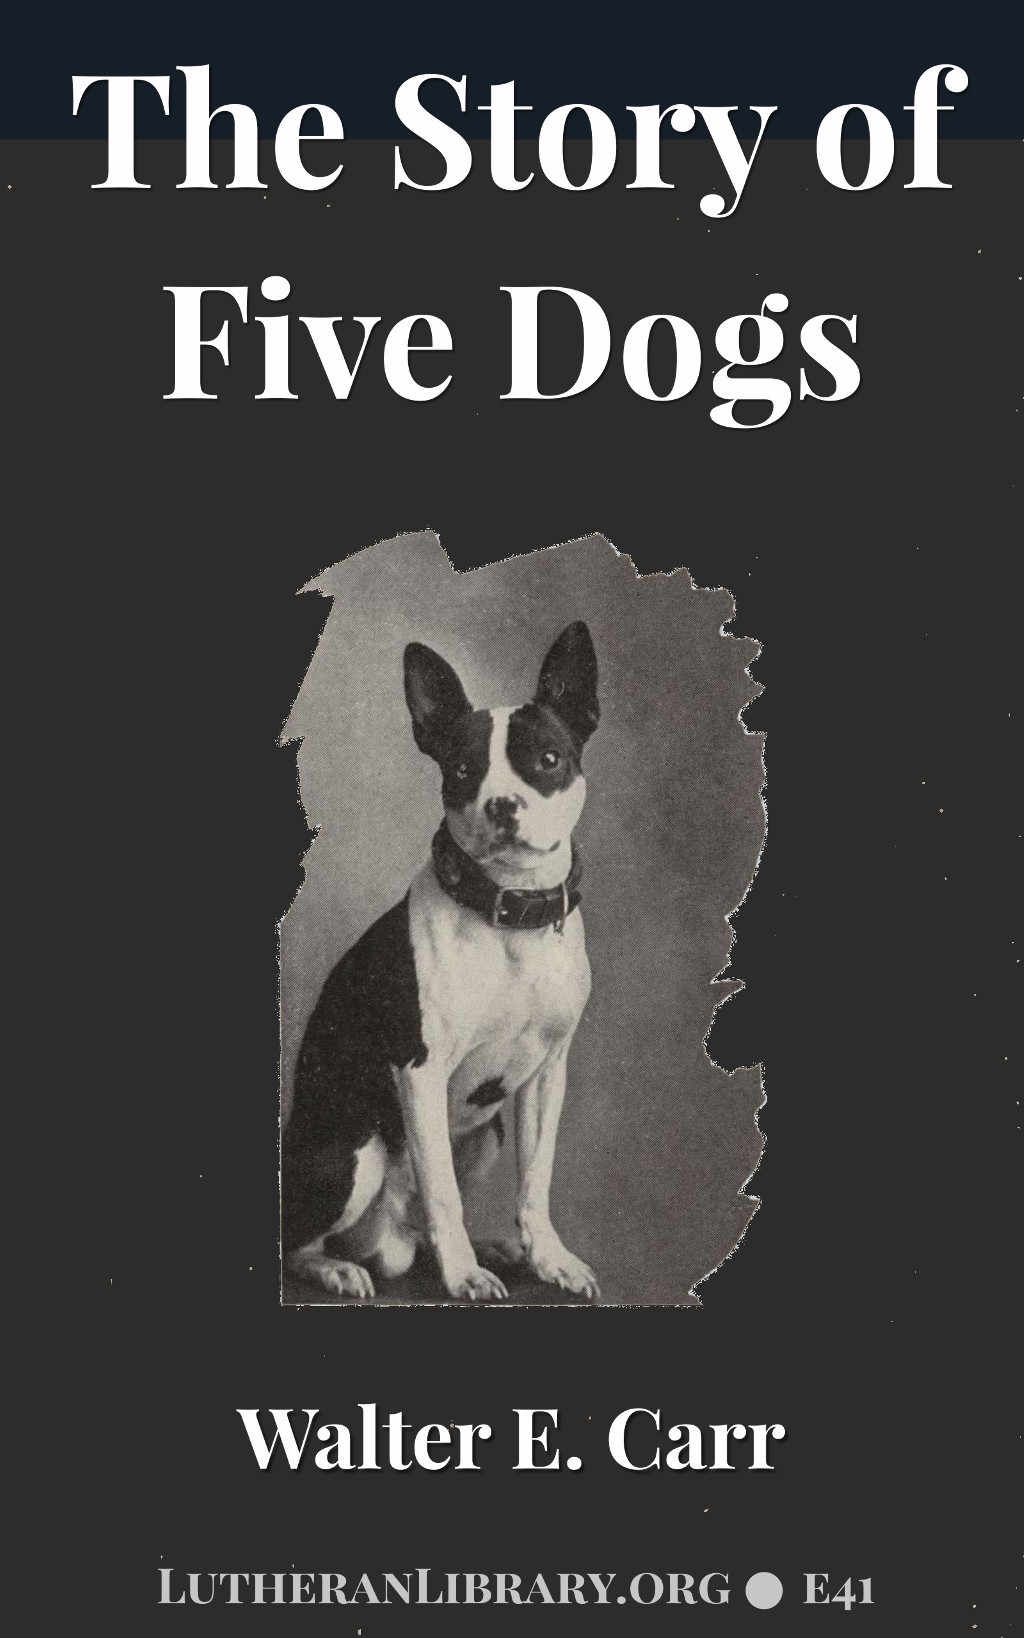 The Story of Five Dogs by Walter E. Carr